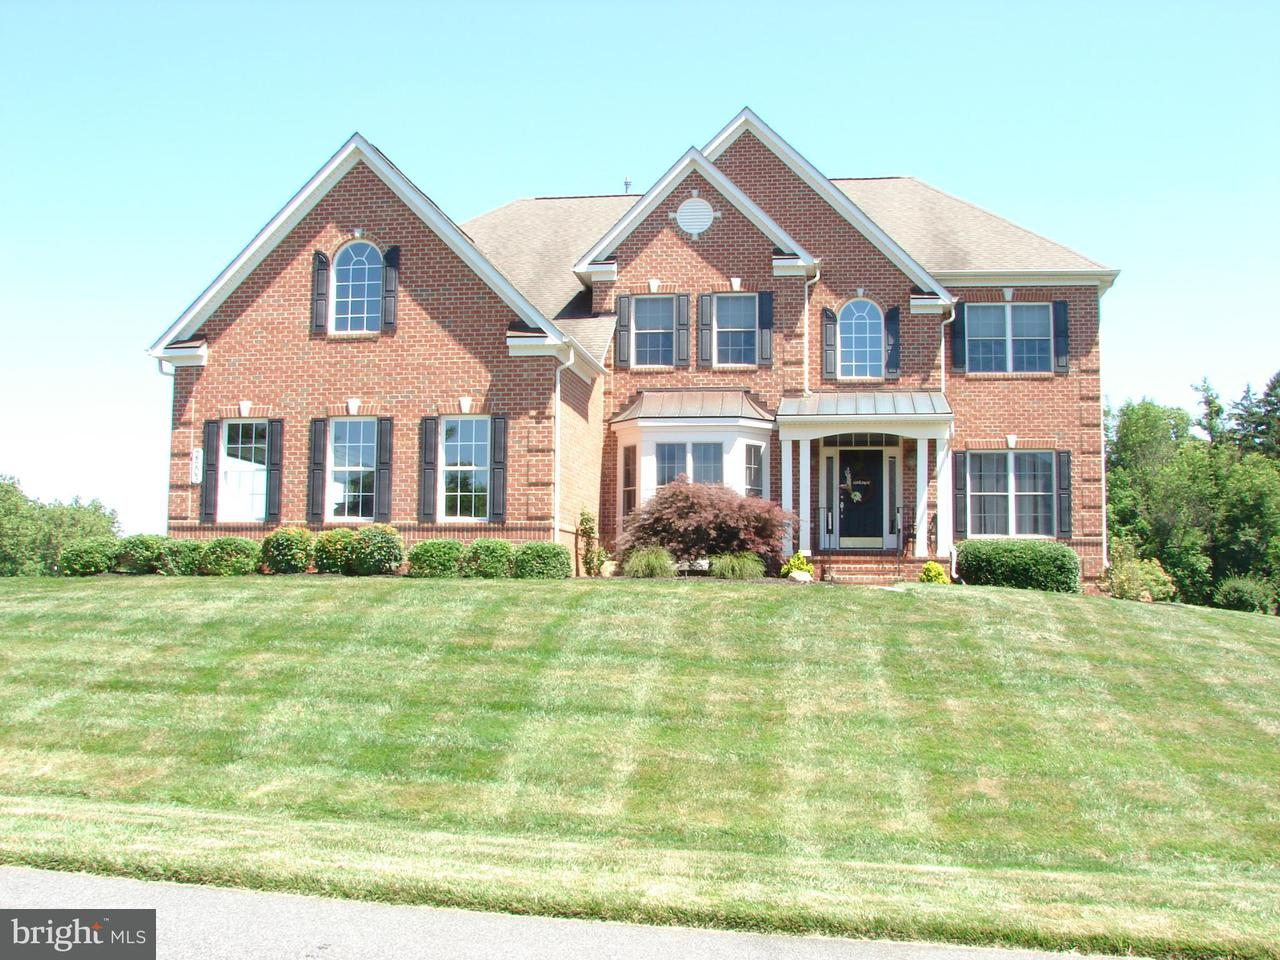 Single Family Home for Sale at 2603 LAUREL VIEW Court 2603 LAUREL VIEW Court Fallston, Maryland 21047 United States